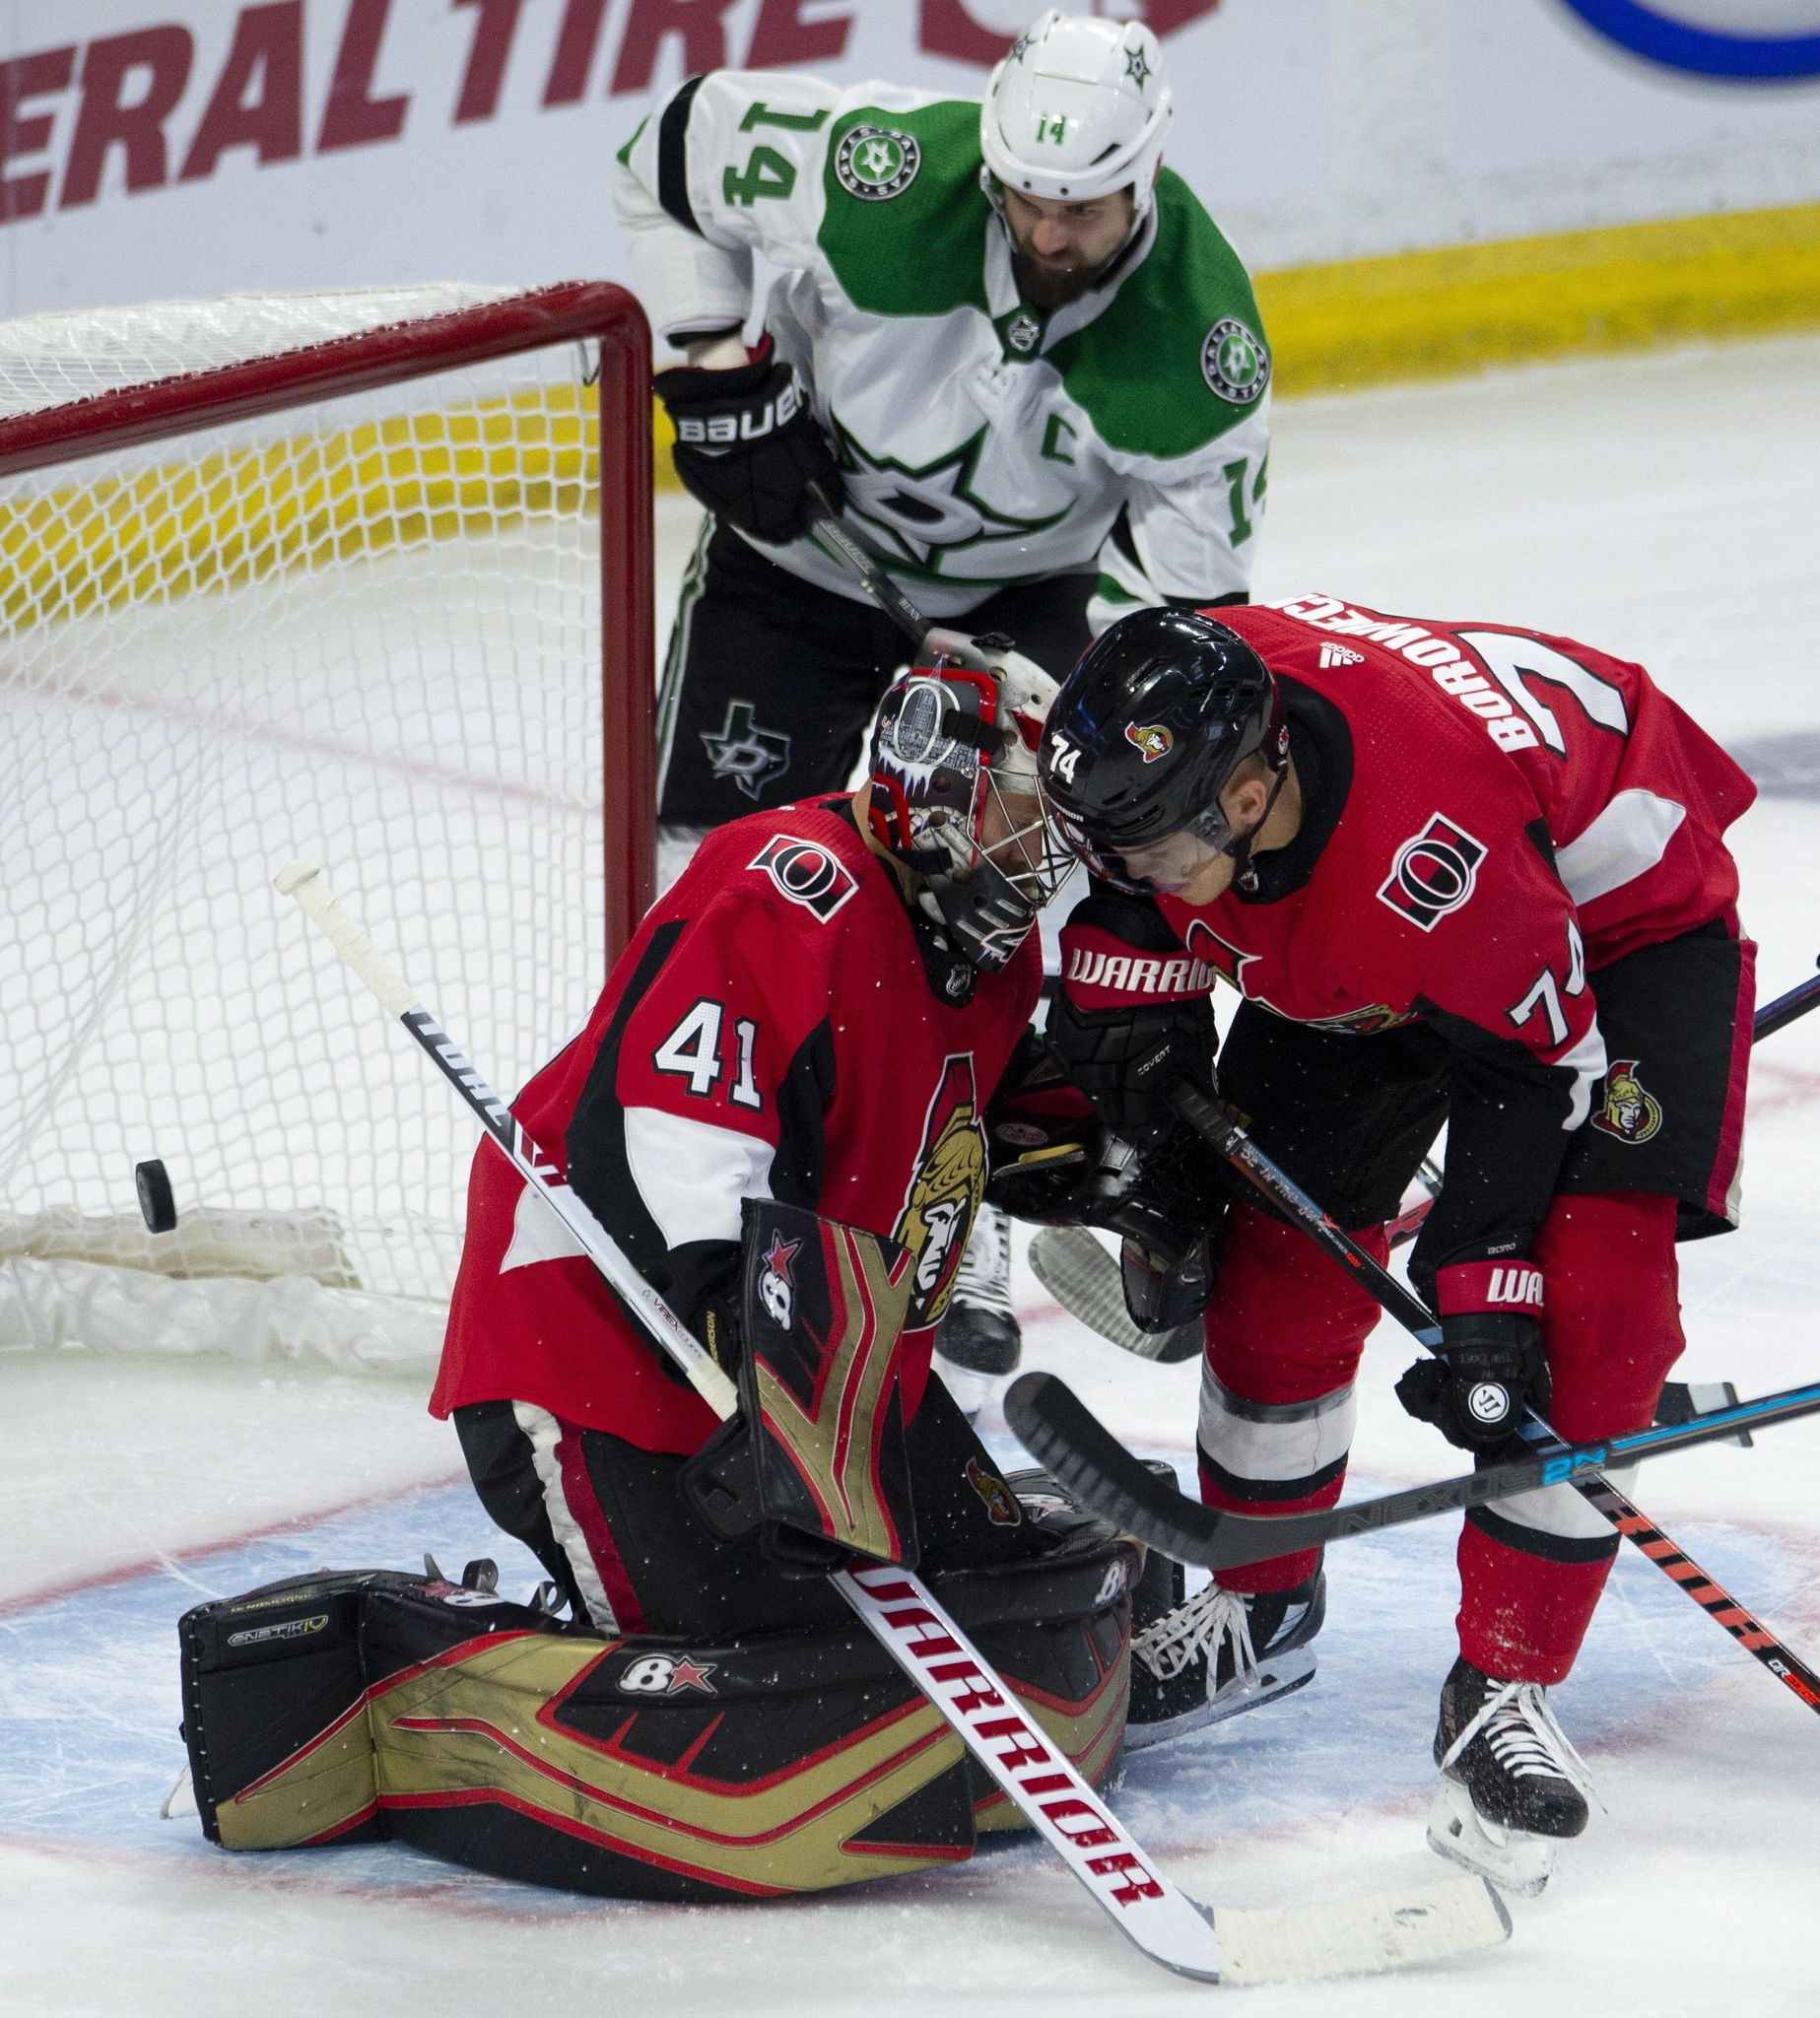 Stars_senators_hockey_74503_s1847x2048